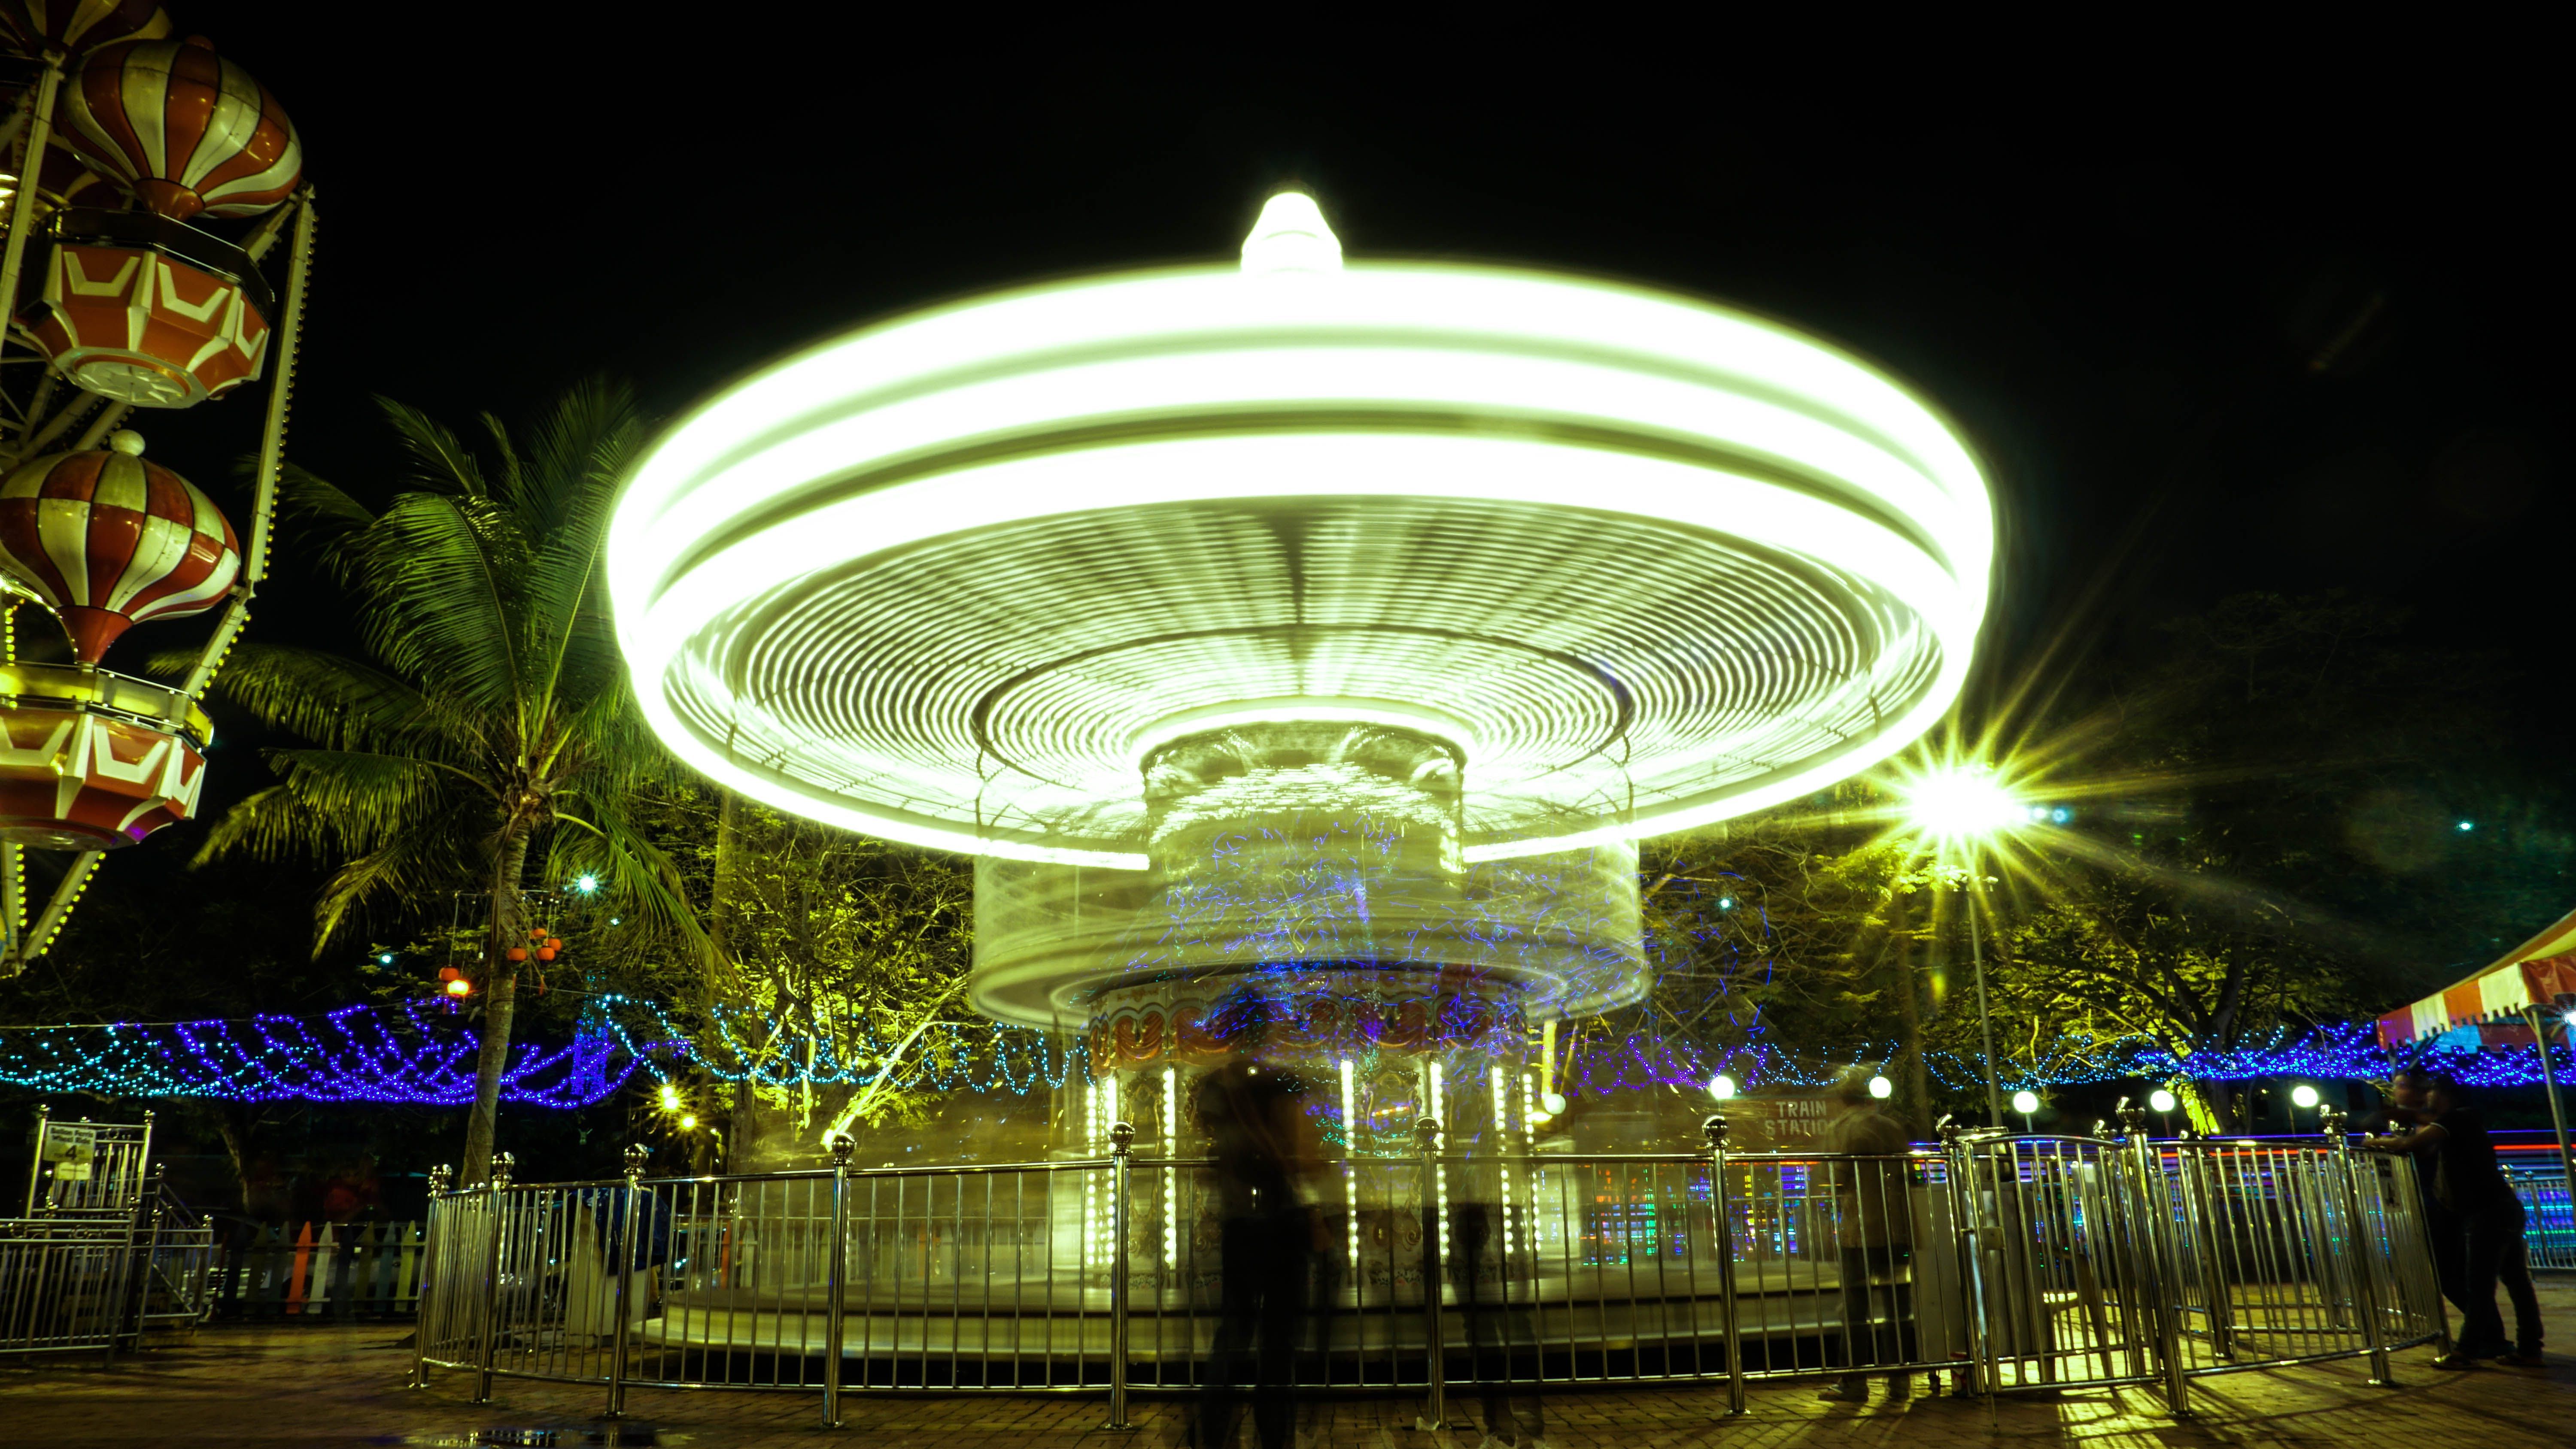 Free stock photo of city lights, funfair, light and shadow, light painting